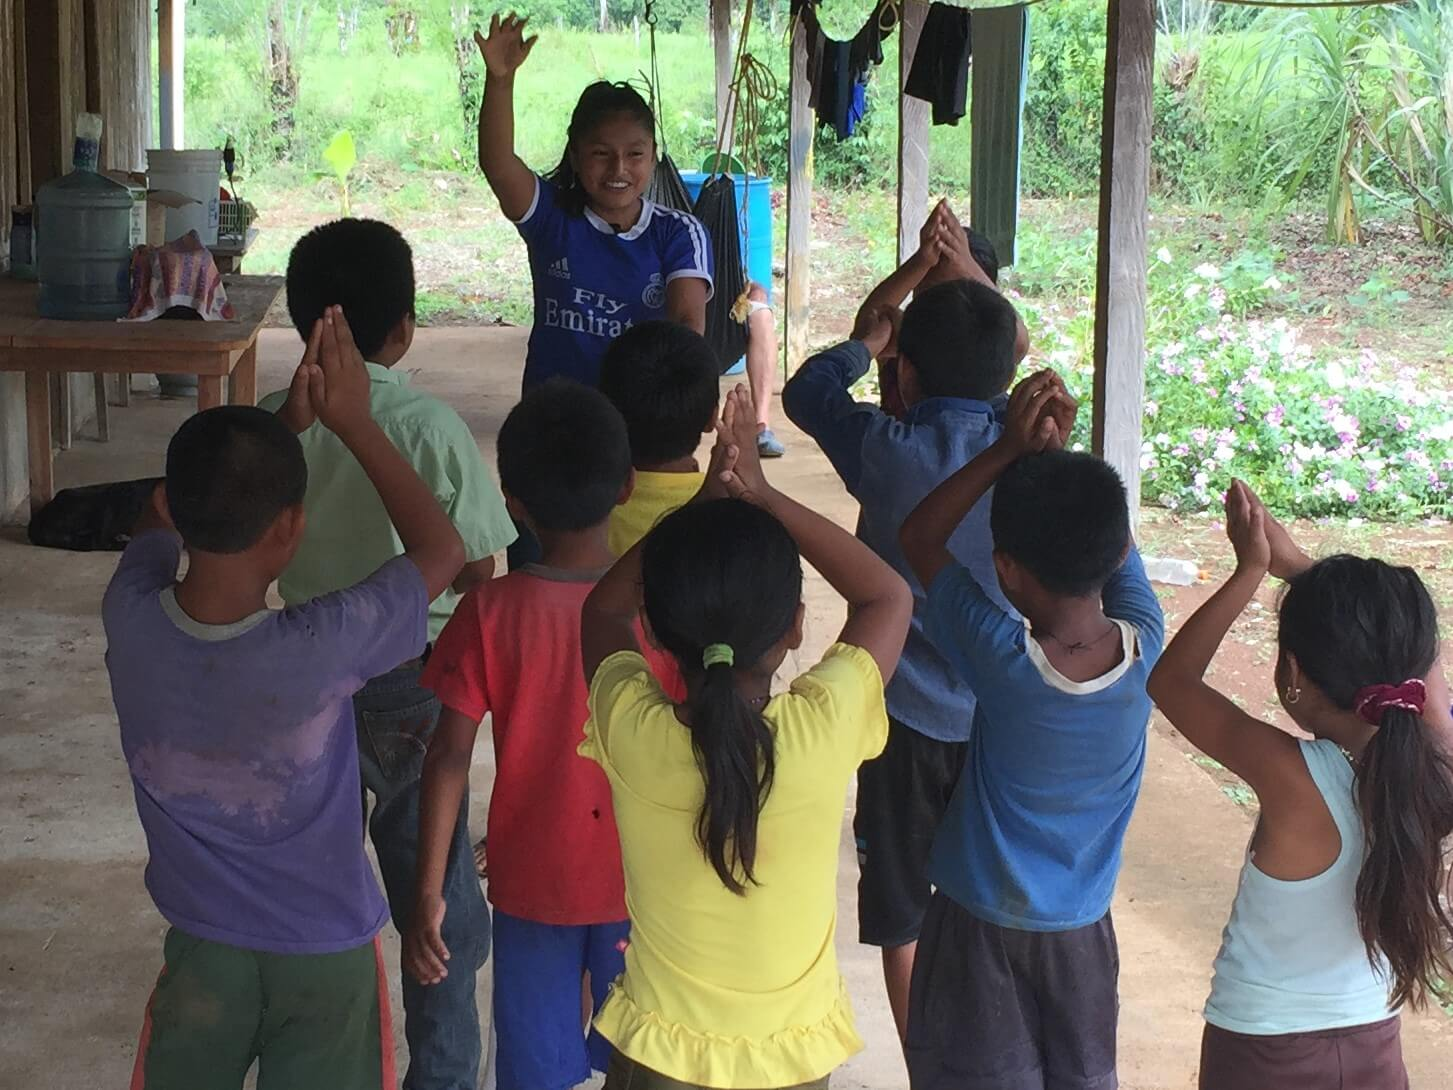 Clarita, the grand-daughter of one of the Kekchi pastors, leads kids in a song about a shark.